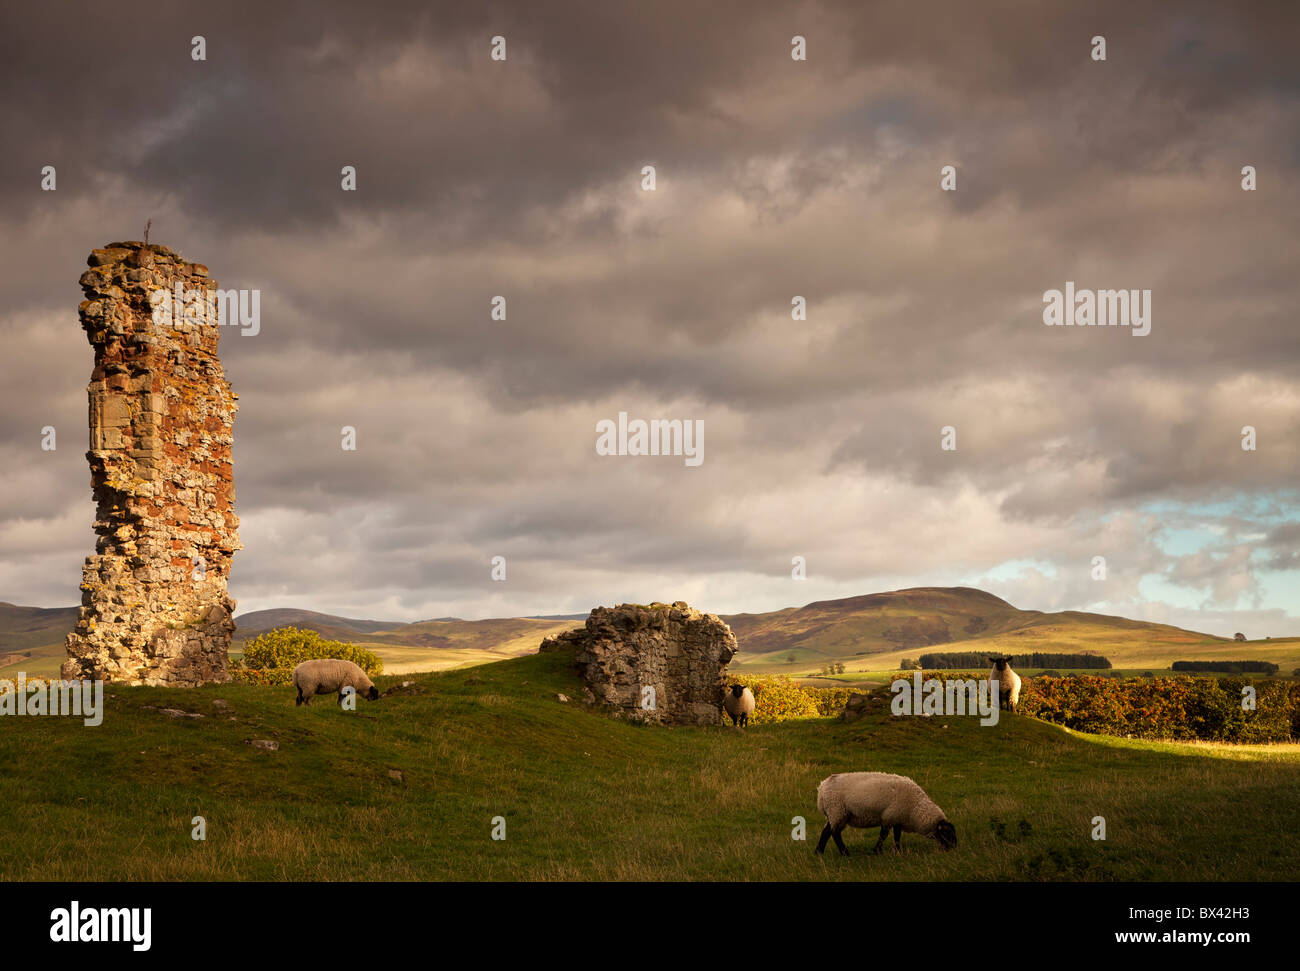 Ruins Of Cessford Castle With Sheep Grazing In The Field; Scottish Borders, Scotland - Stock Image